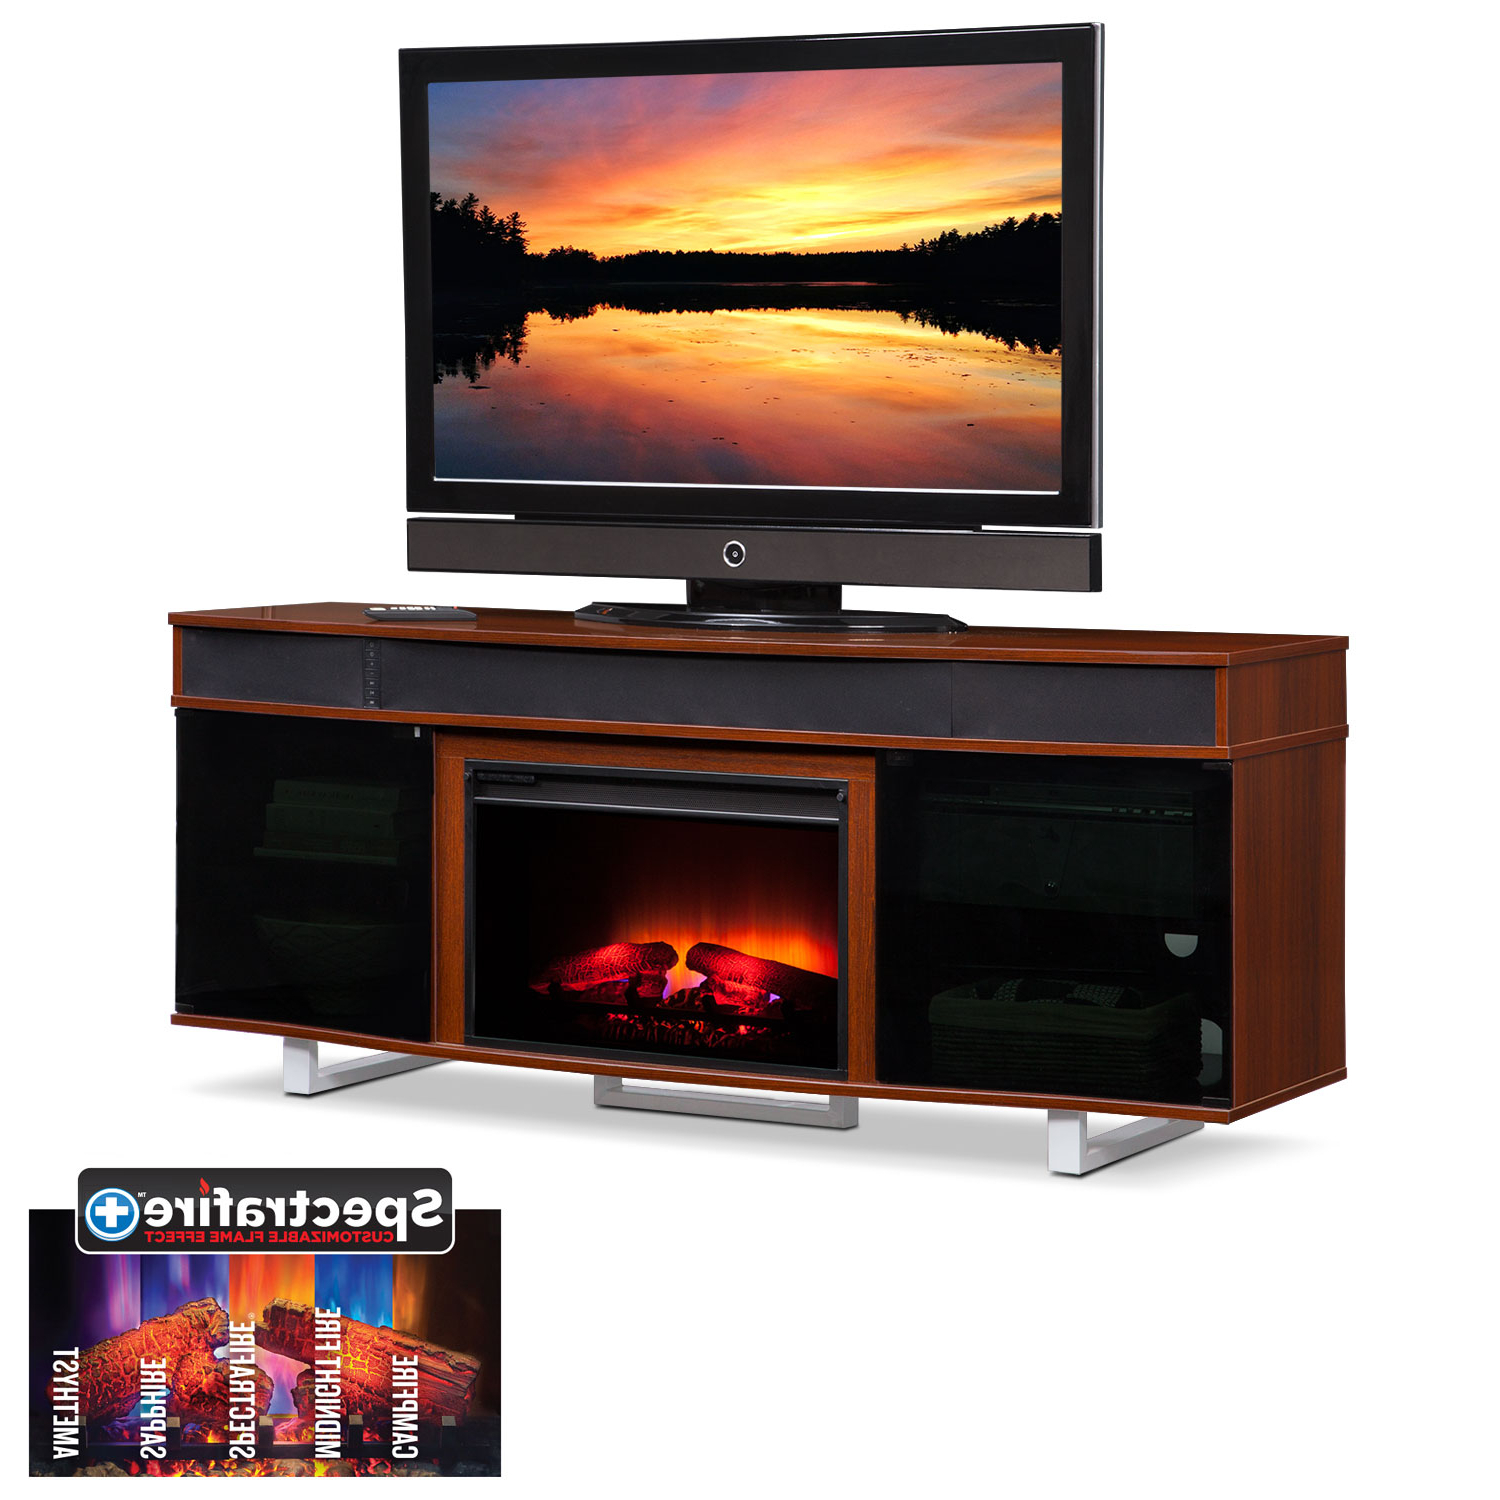 "Pacer 72"" Traditional Fireplace Tv Stand With Sound Bar – Cherry For Most Up To Date Light Cherry Tv Stands (View 11 of 20)"